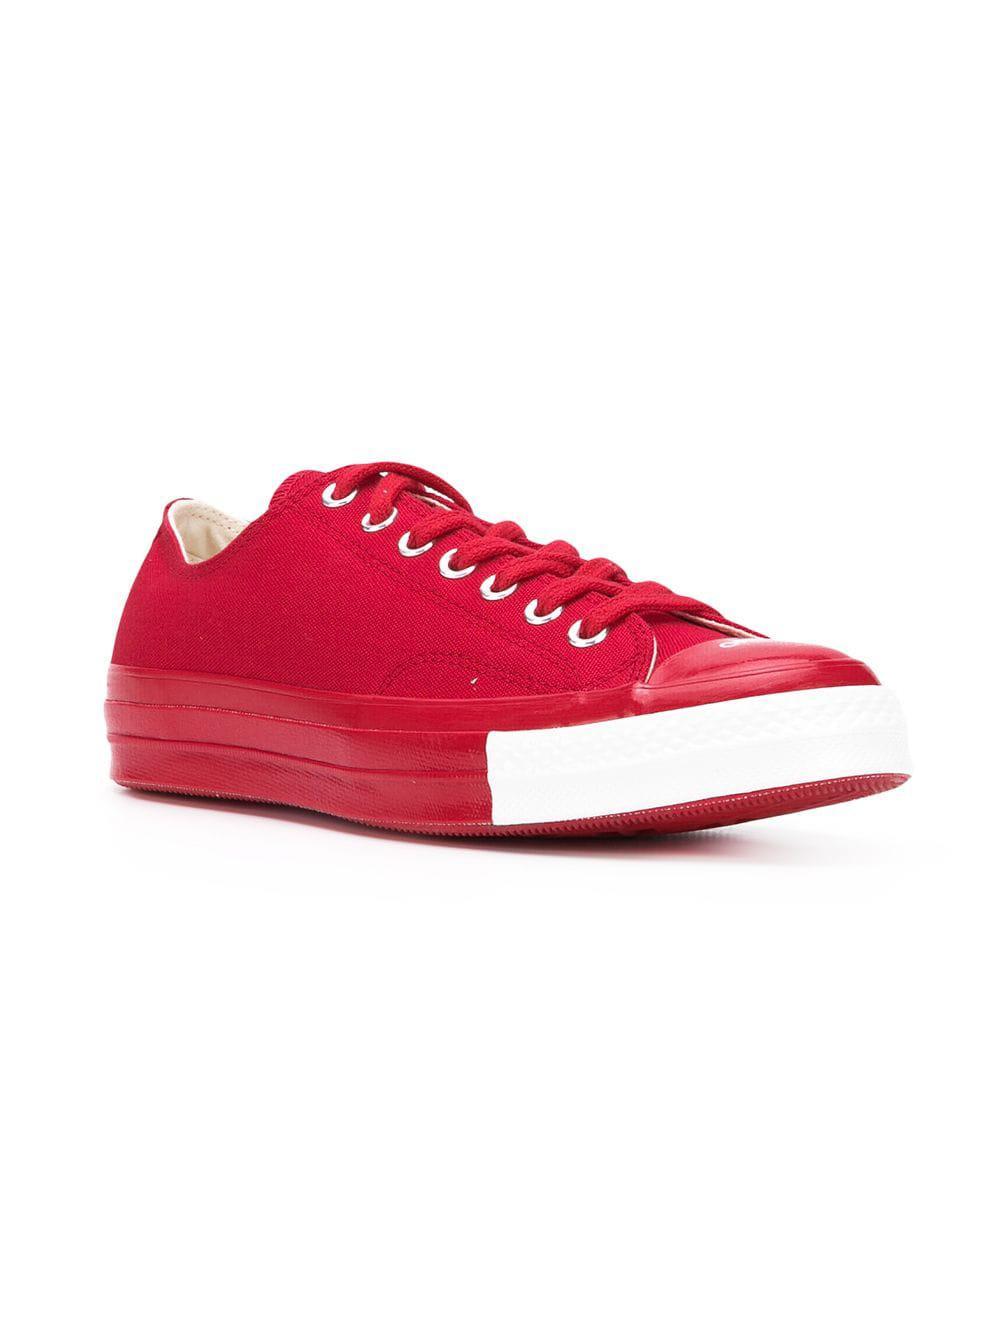 c77994c19cc7 Lyst - Converse X Undercover Chuck 70 Sneakers in Red - Save 42%